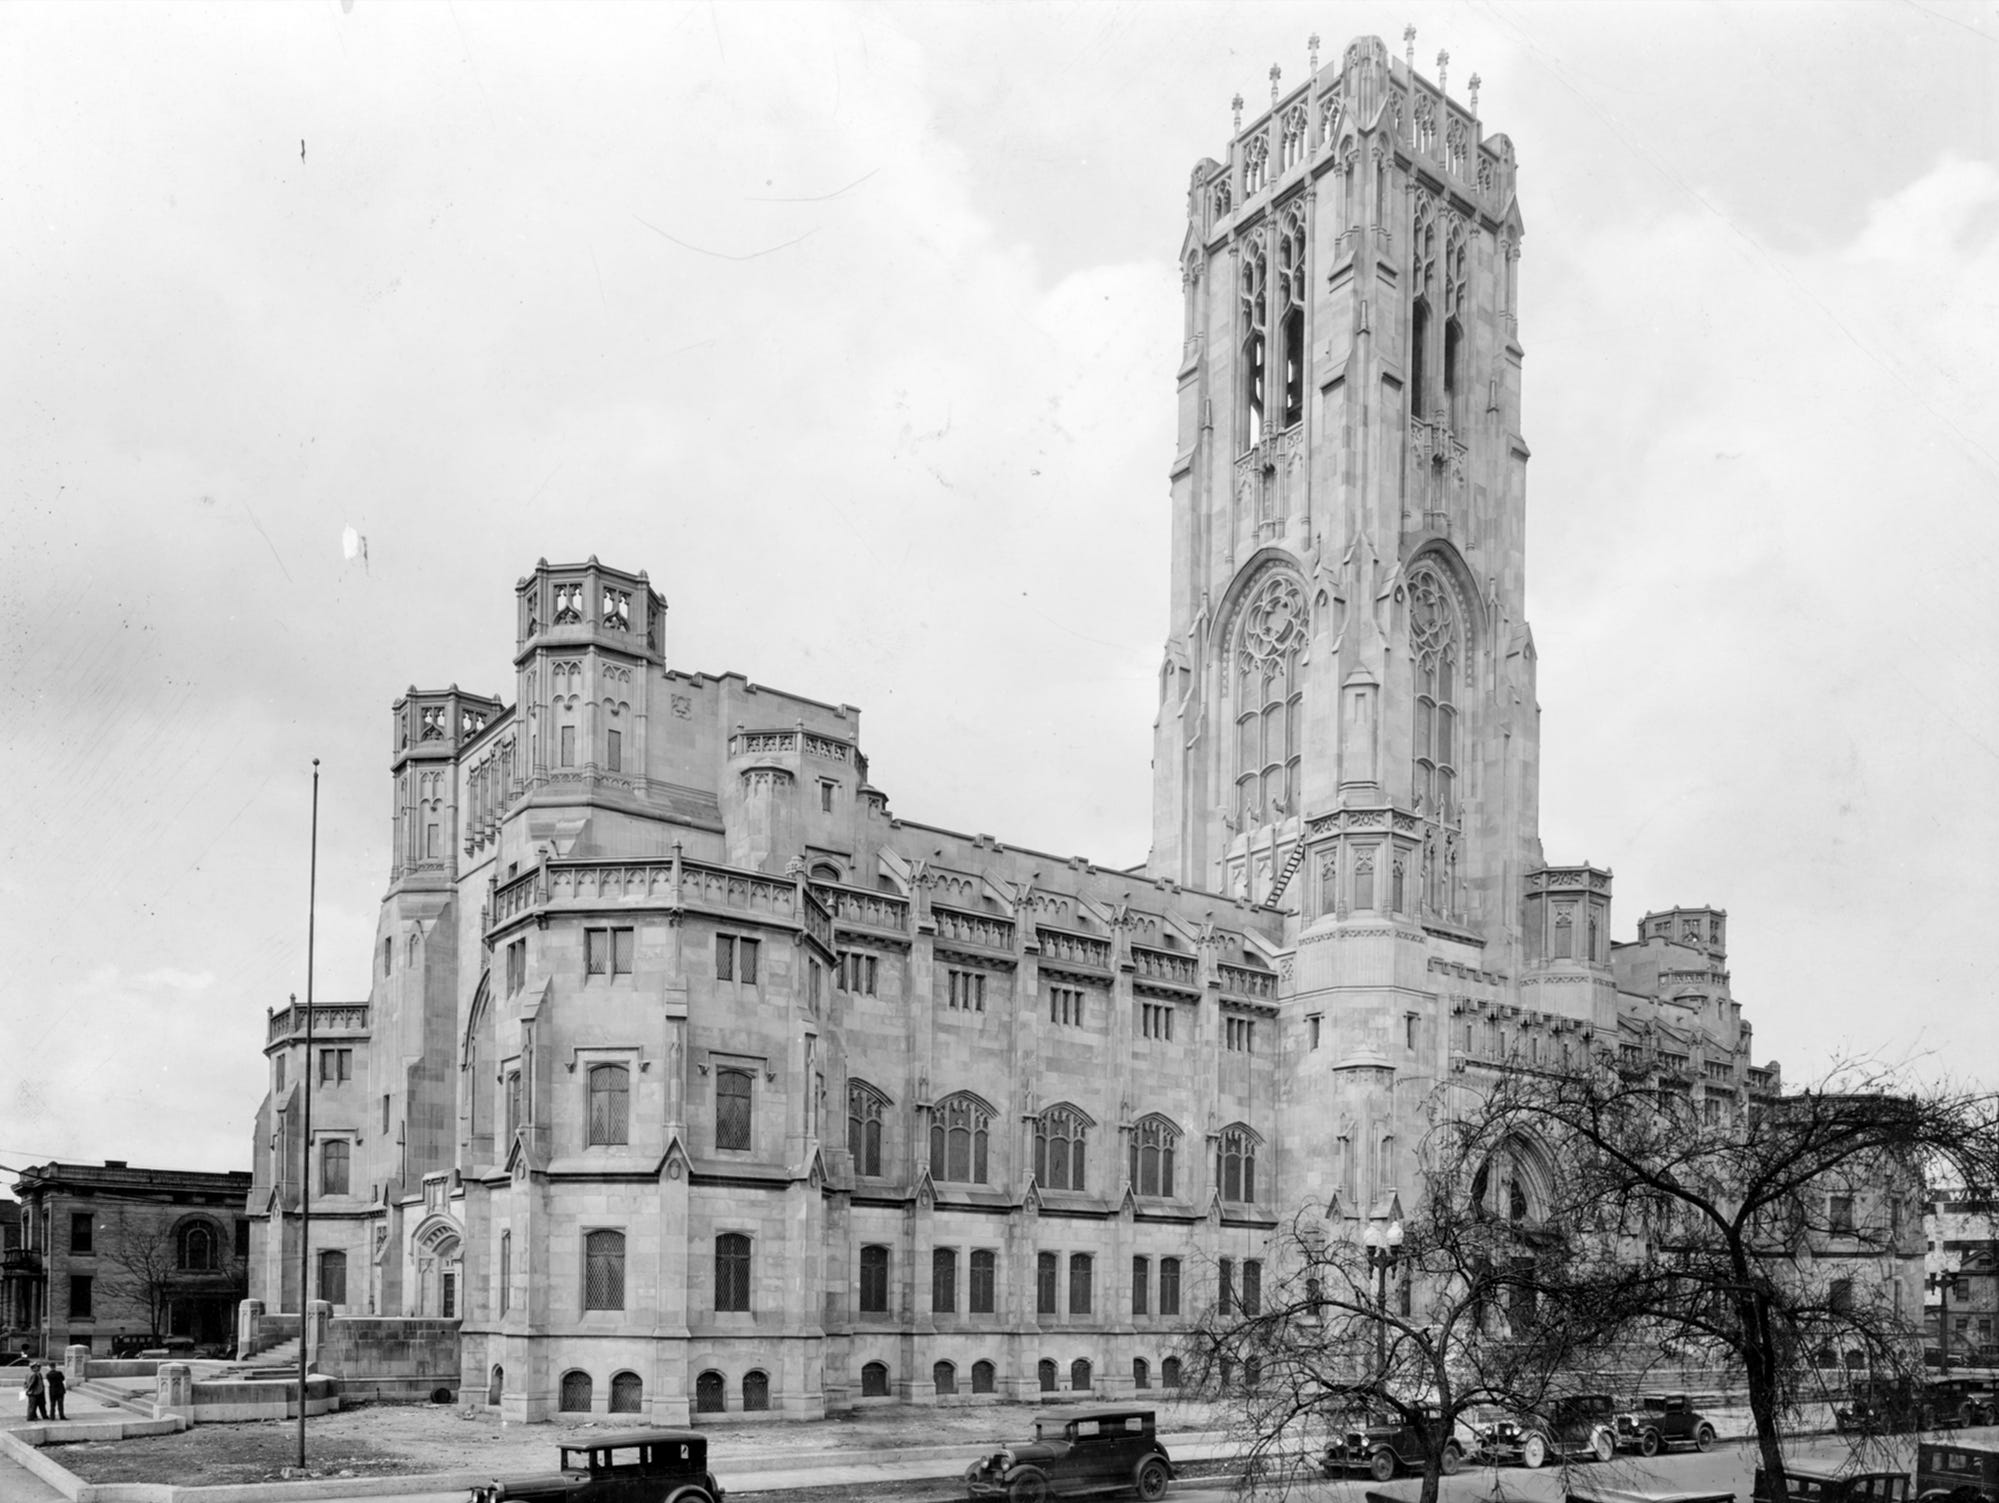 Scottish Rite Cathedral ----July 26, 1929.  The Scottish Rite Cathedral, completed in 1929, is the world's largest and cost $2.5 million to build. located at 650 Meridian st., the entire structure is laid out in multiples of 33 feet, symbolizing the 33 years of Jesus Christ's life.